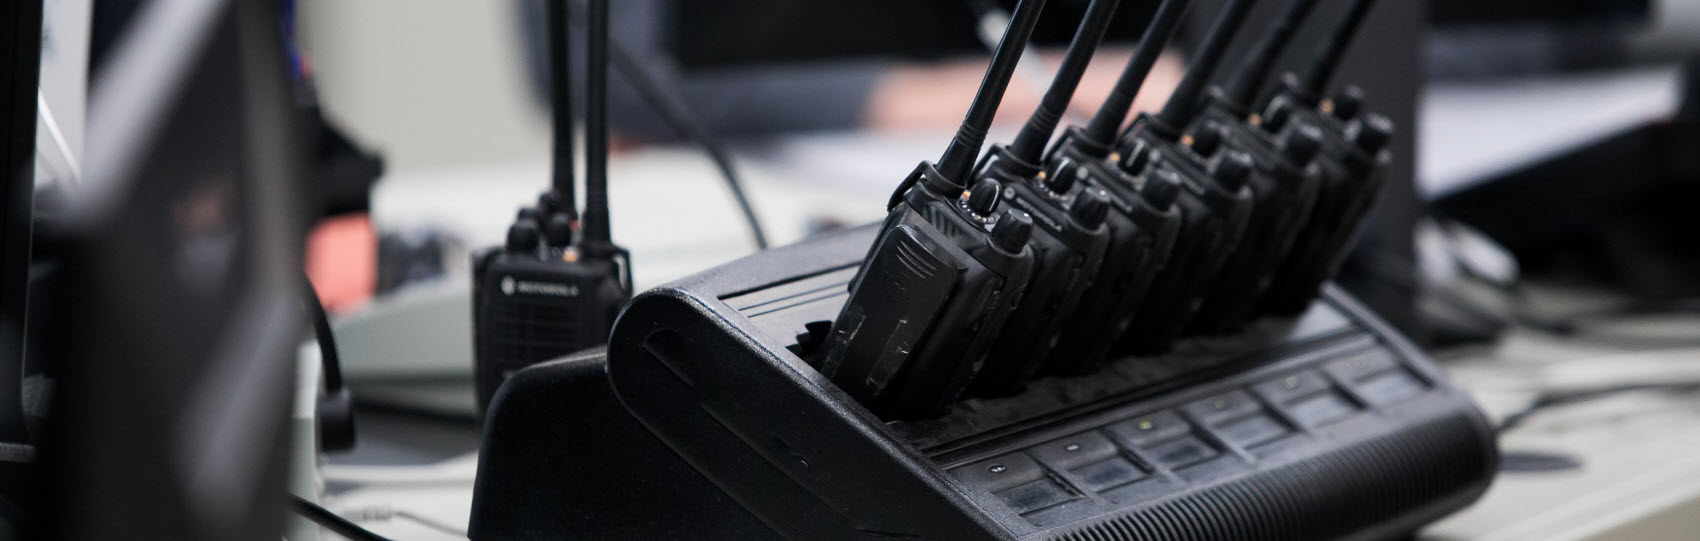 Two-Way Radios for Sale